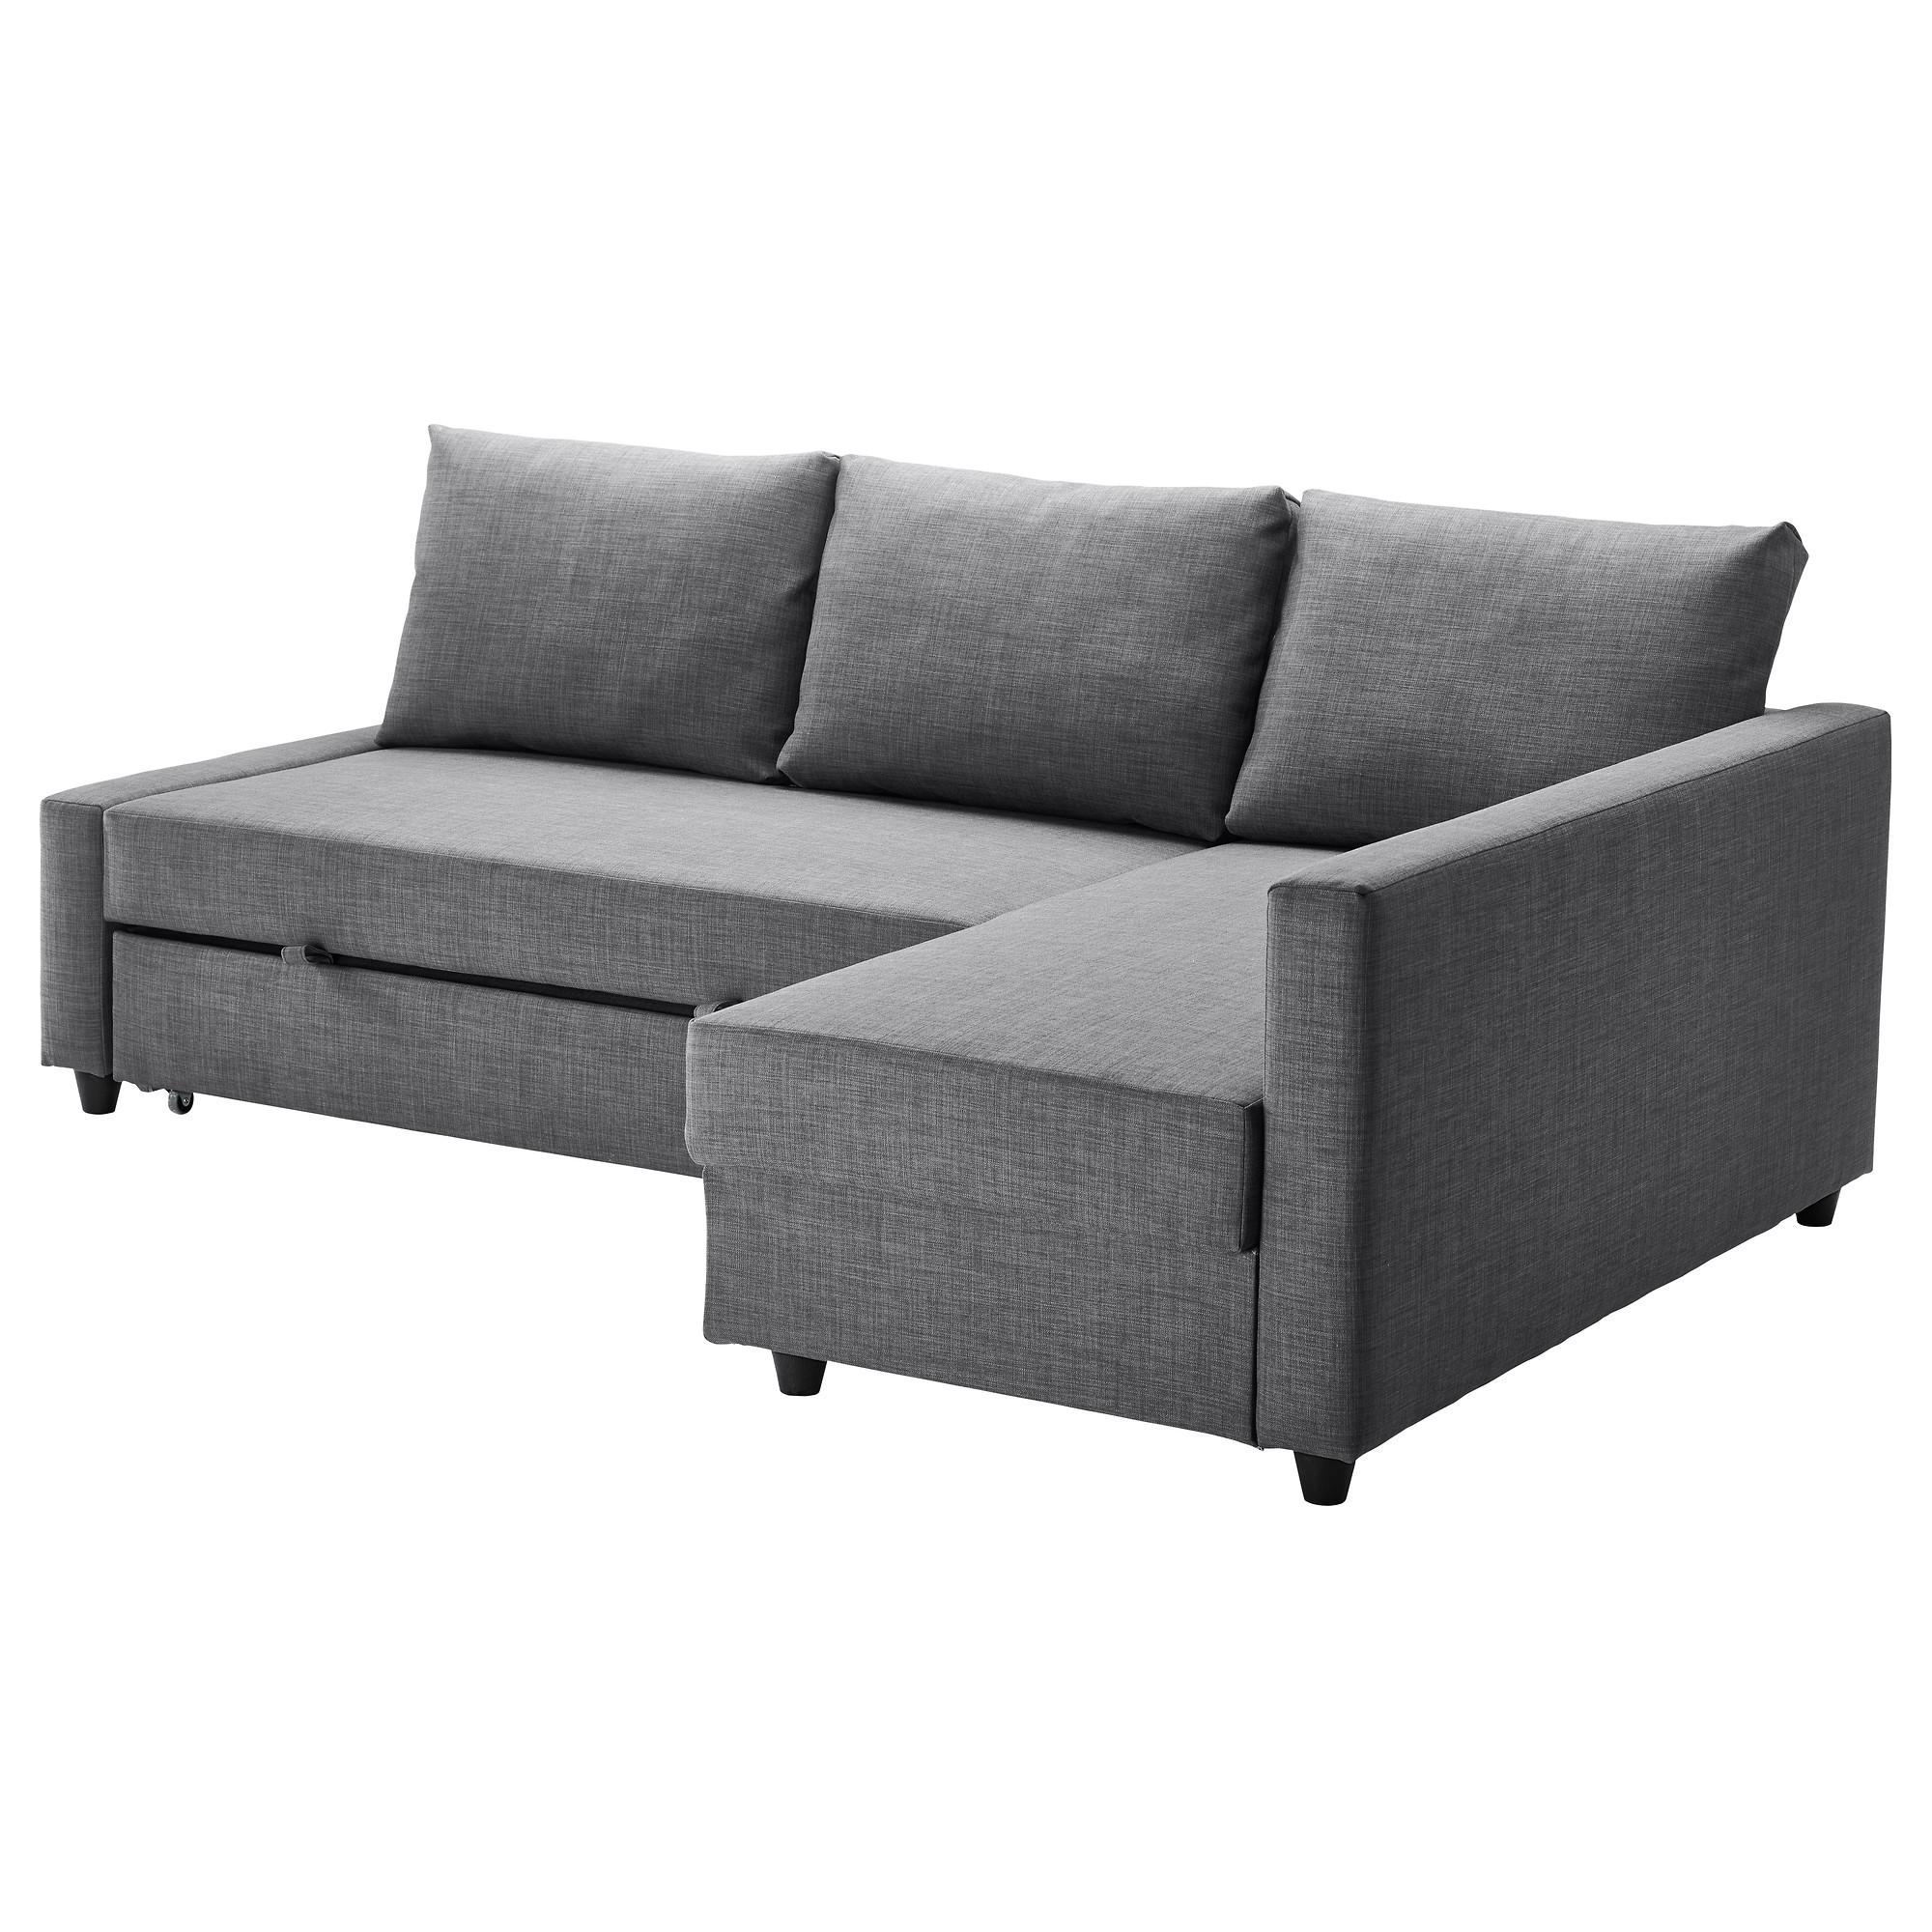 FRIHETEN sleeper sectional,3 seat w/storage, Skiftebo dark gray Length: 90